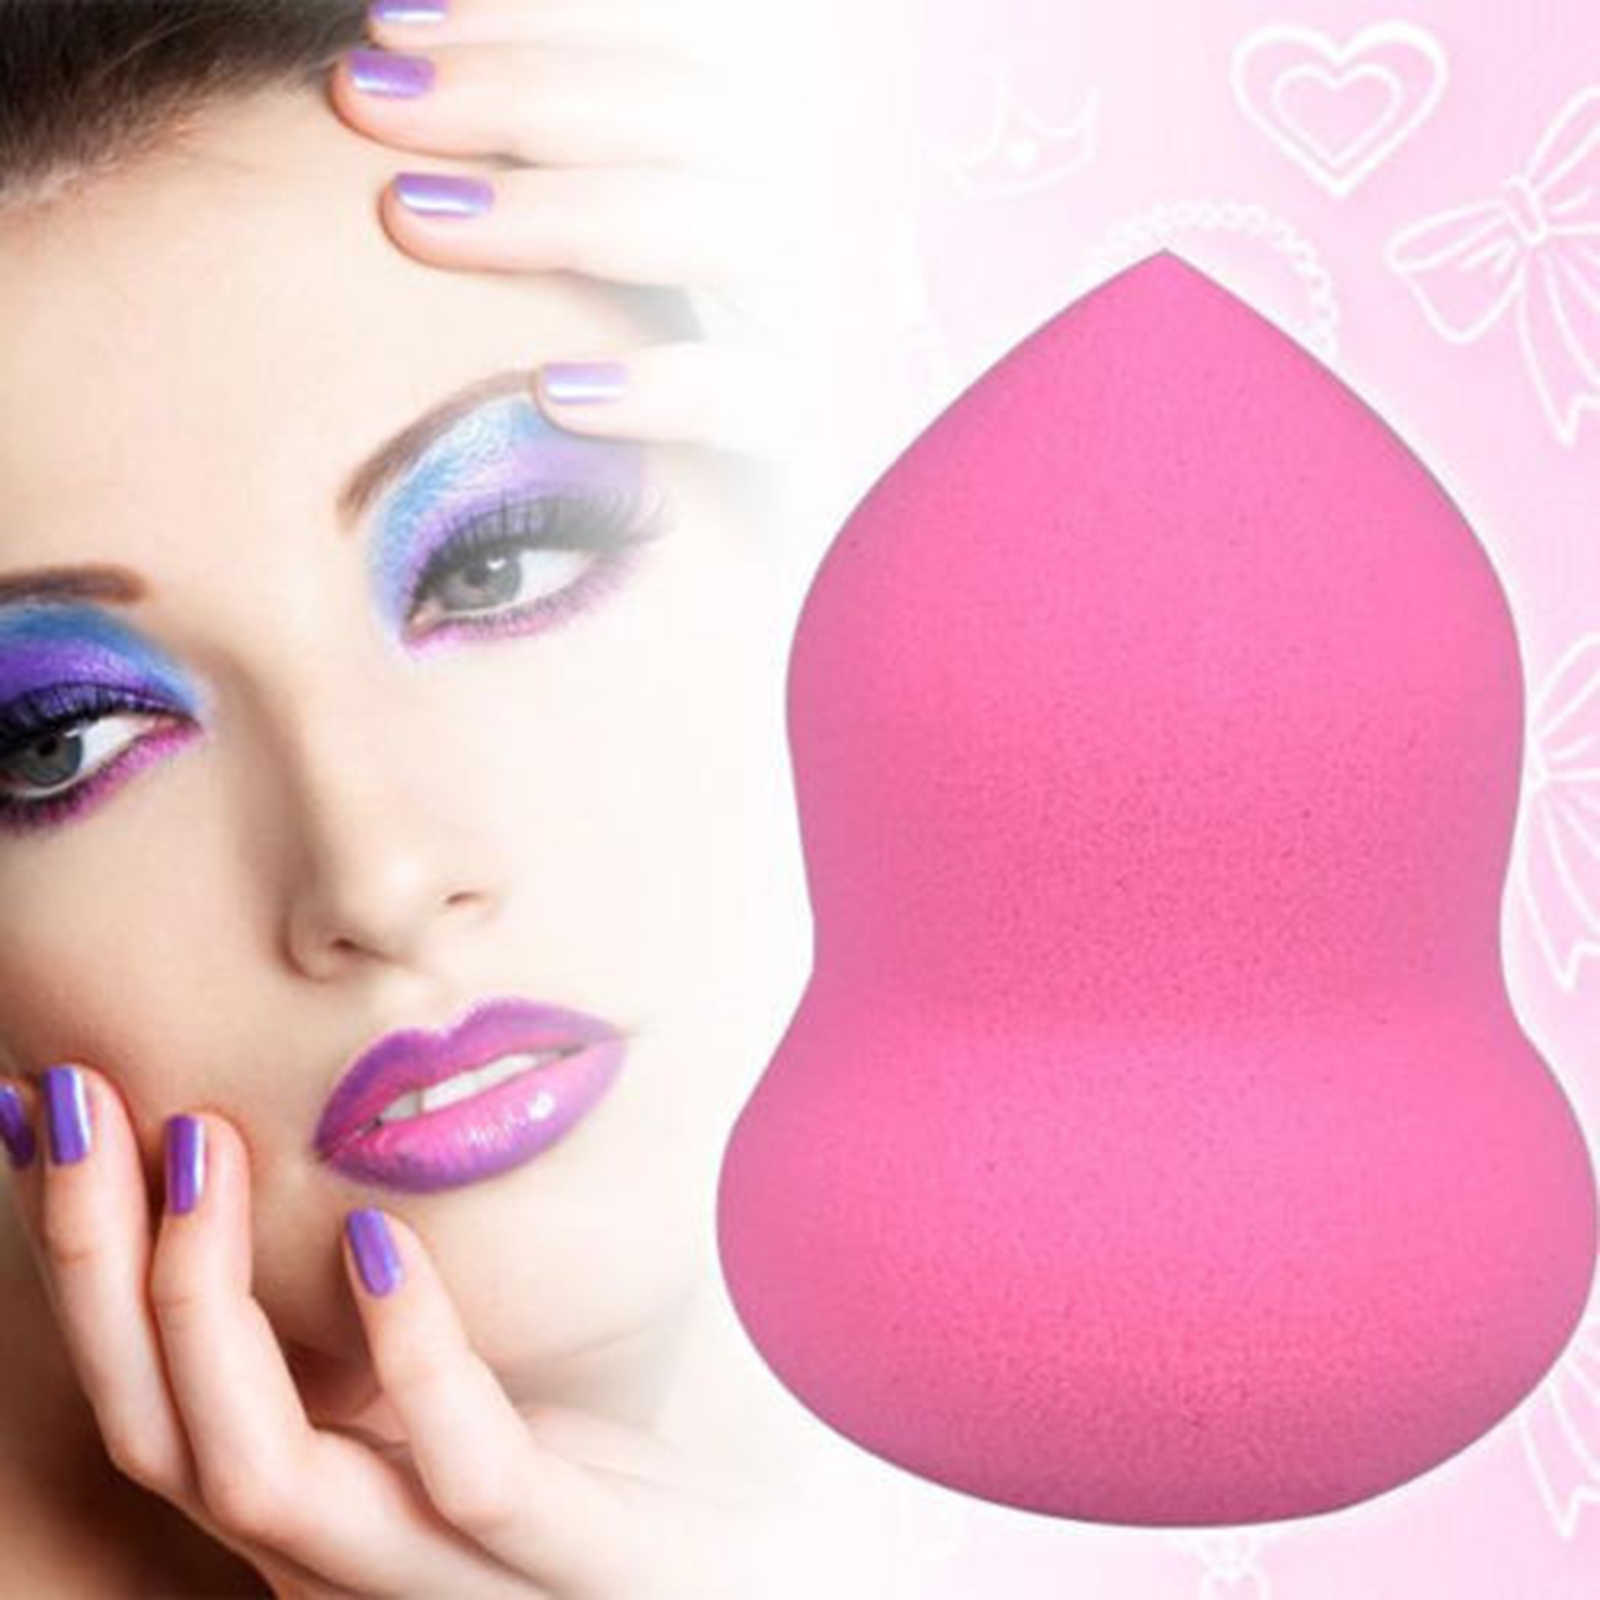 1 Pcs Soft Makeup Puff Sponge Blender Puff Flawless Smooth Powder Foundation Puff Beauty Makeup Cosmetic Tools New Colors Random